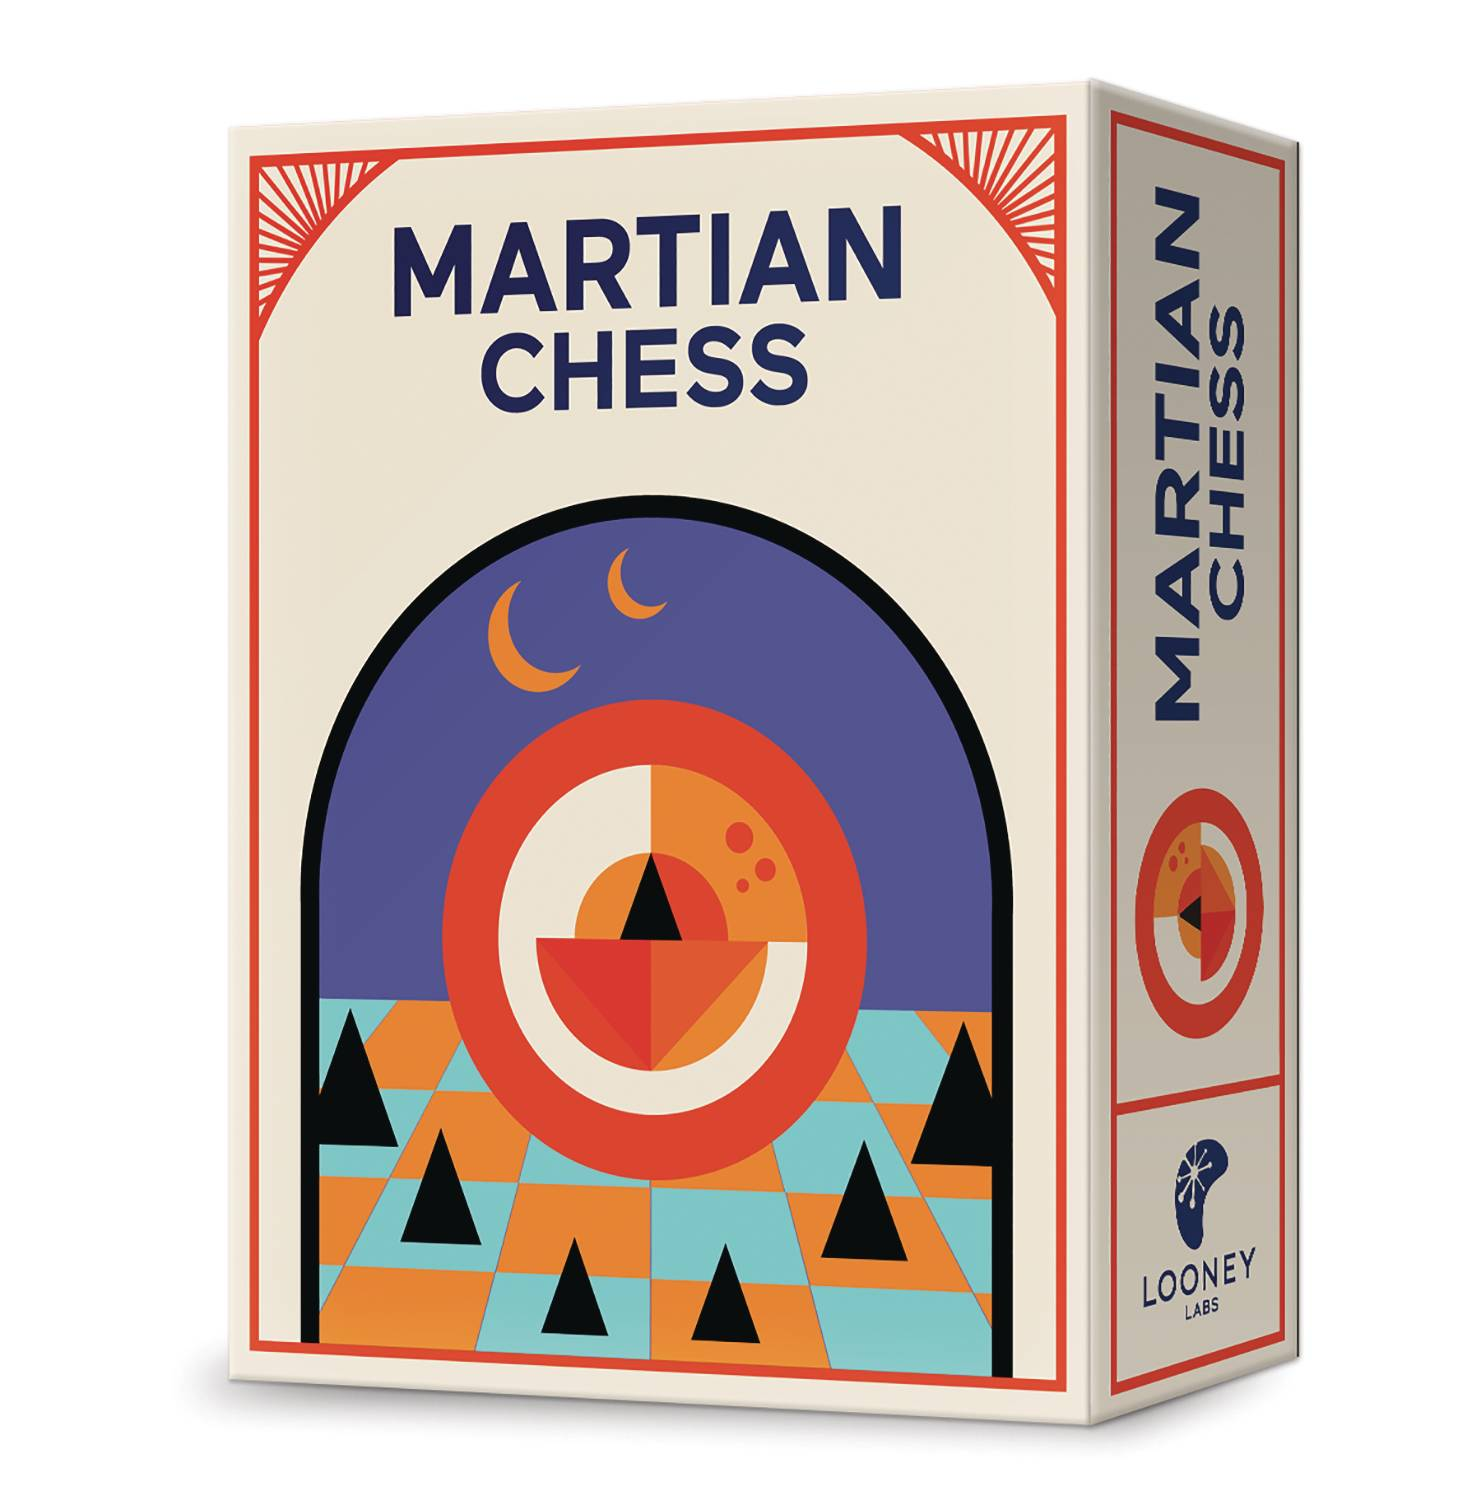 MARTIAN CHESS GAME